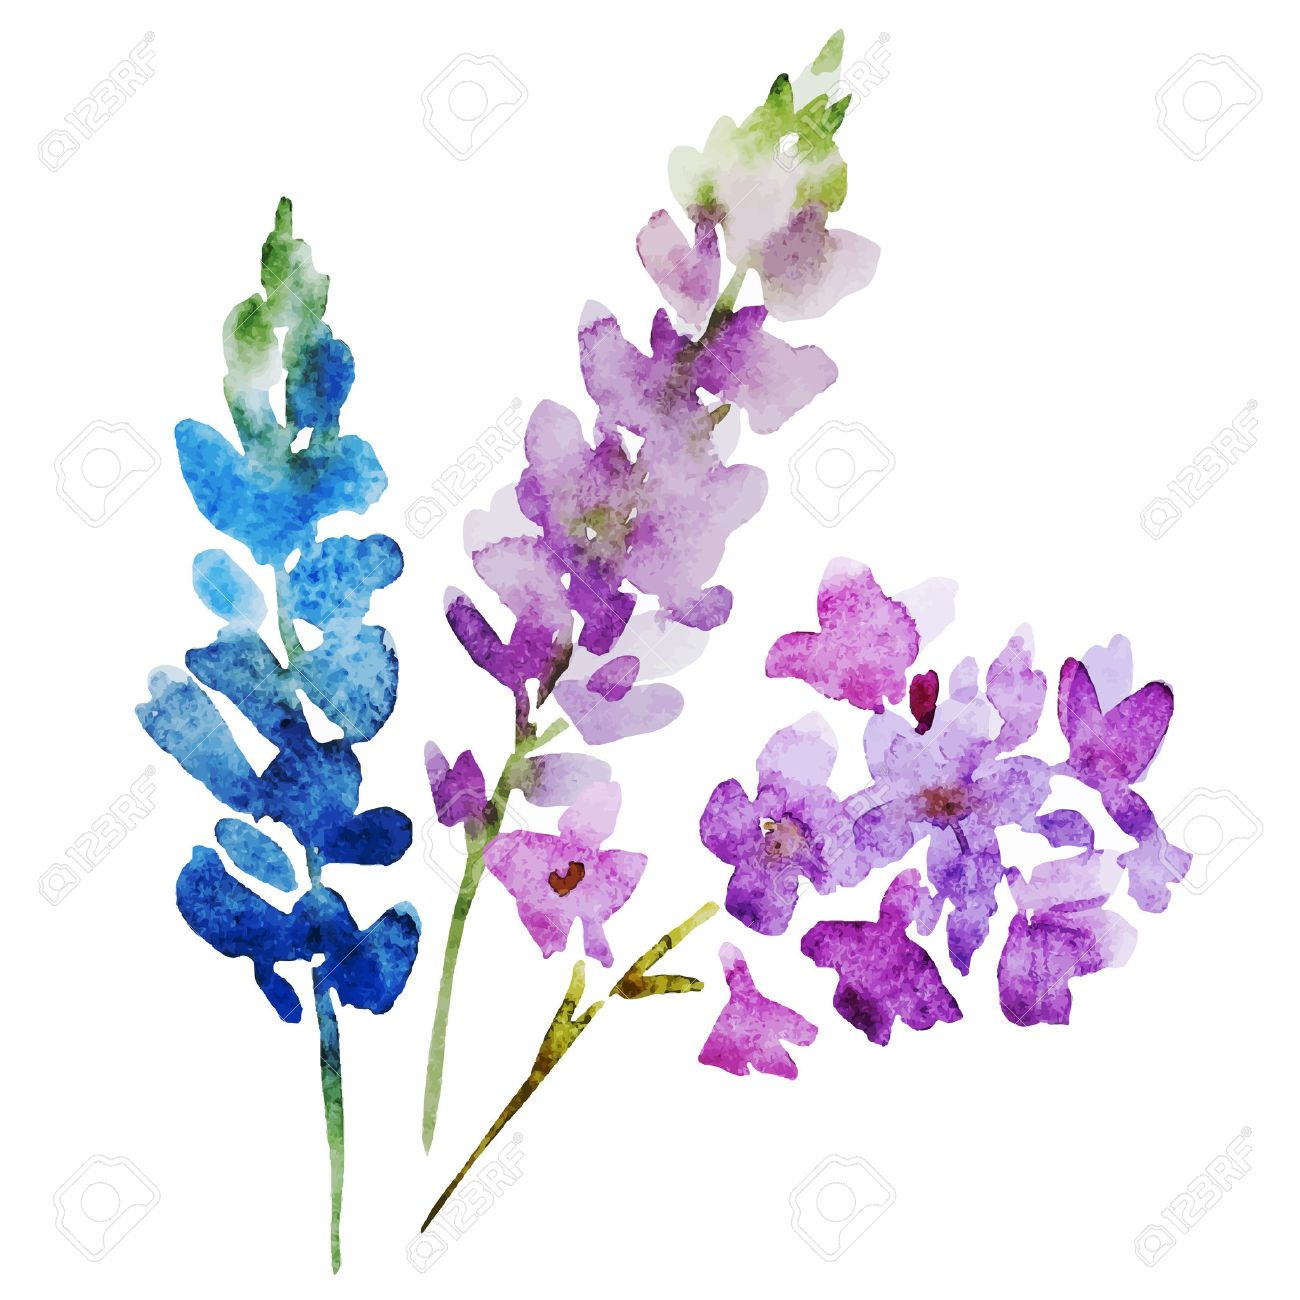 Image result for watercolor flowers Watercolor flower